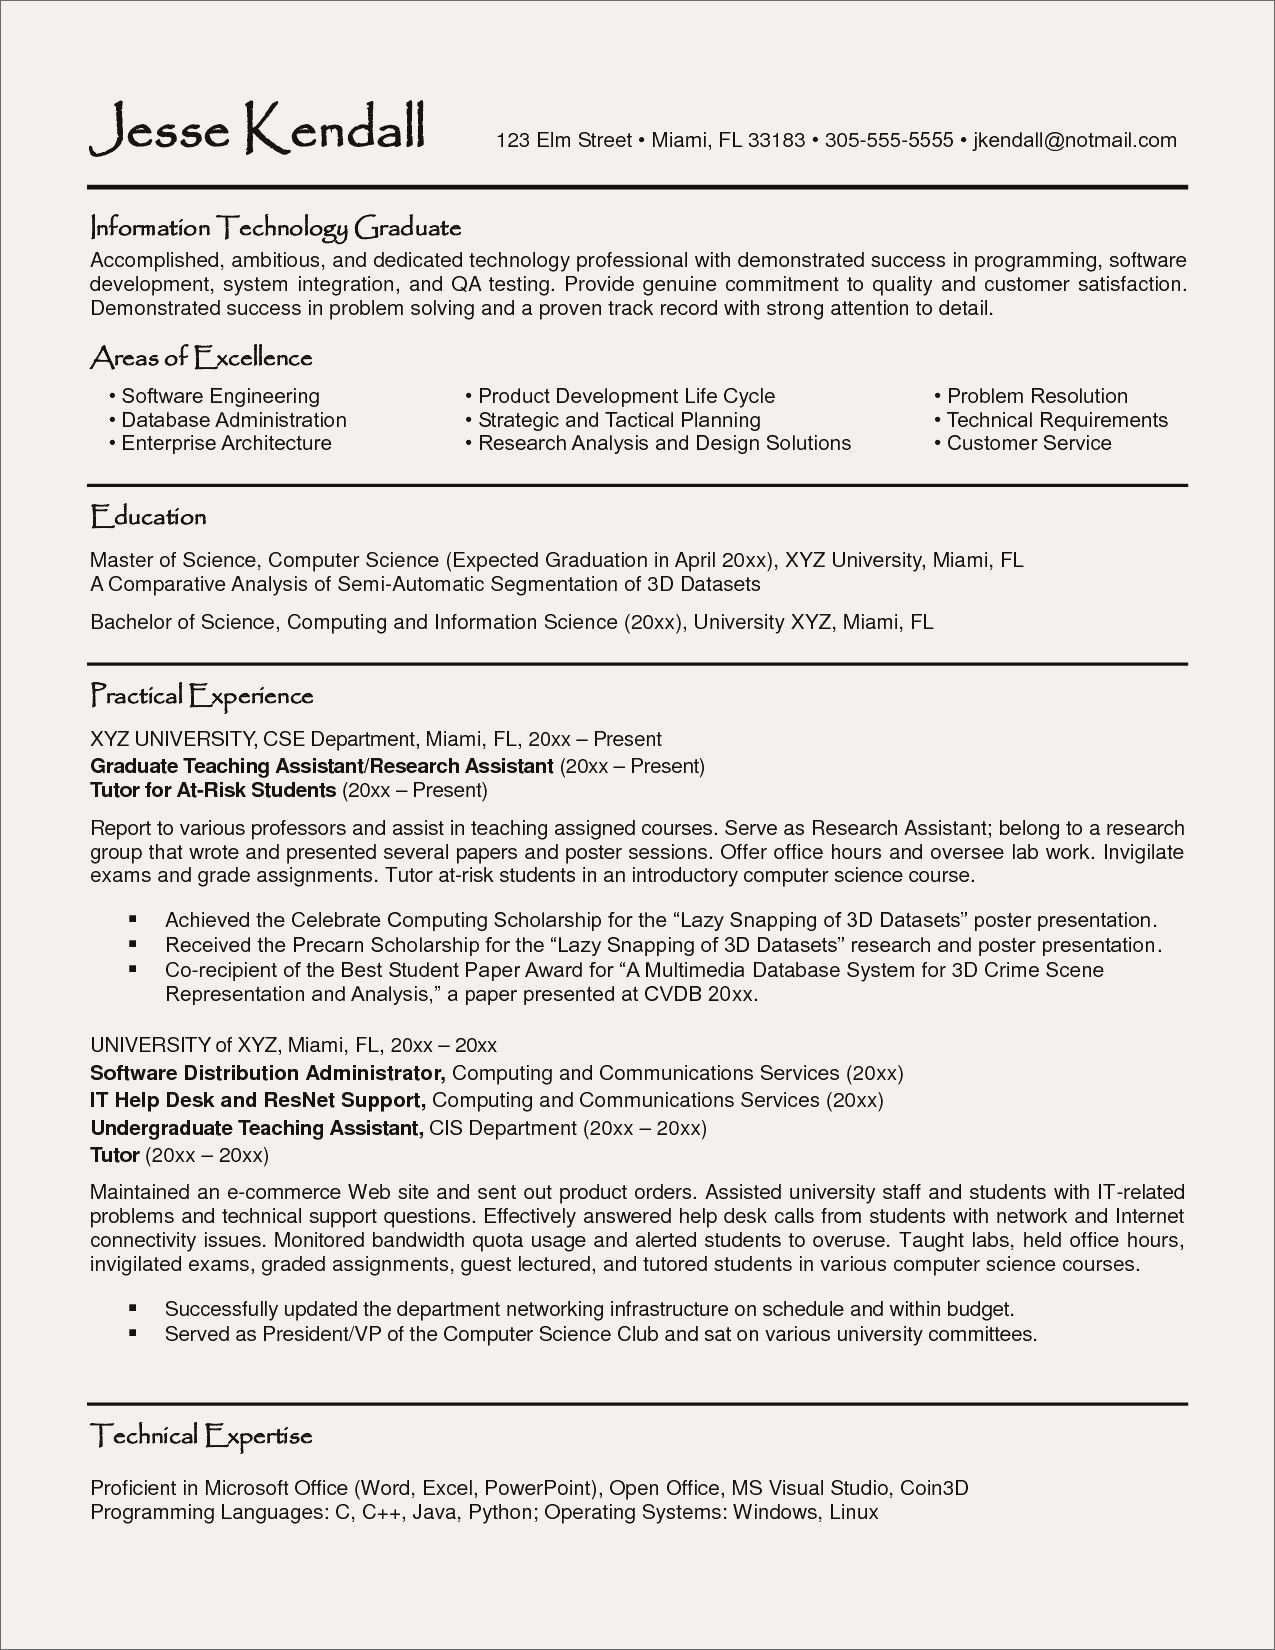 Information Technology Resume Template Word - Resume for Science Tutor Best Resume topics Best ¢‹†…¡ Resume